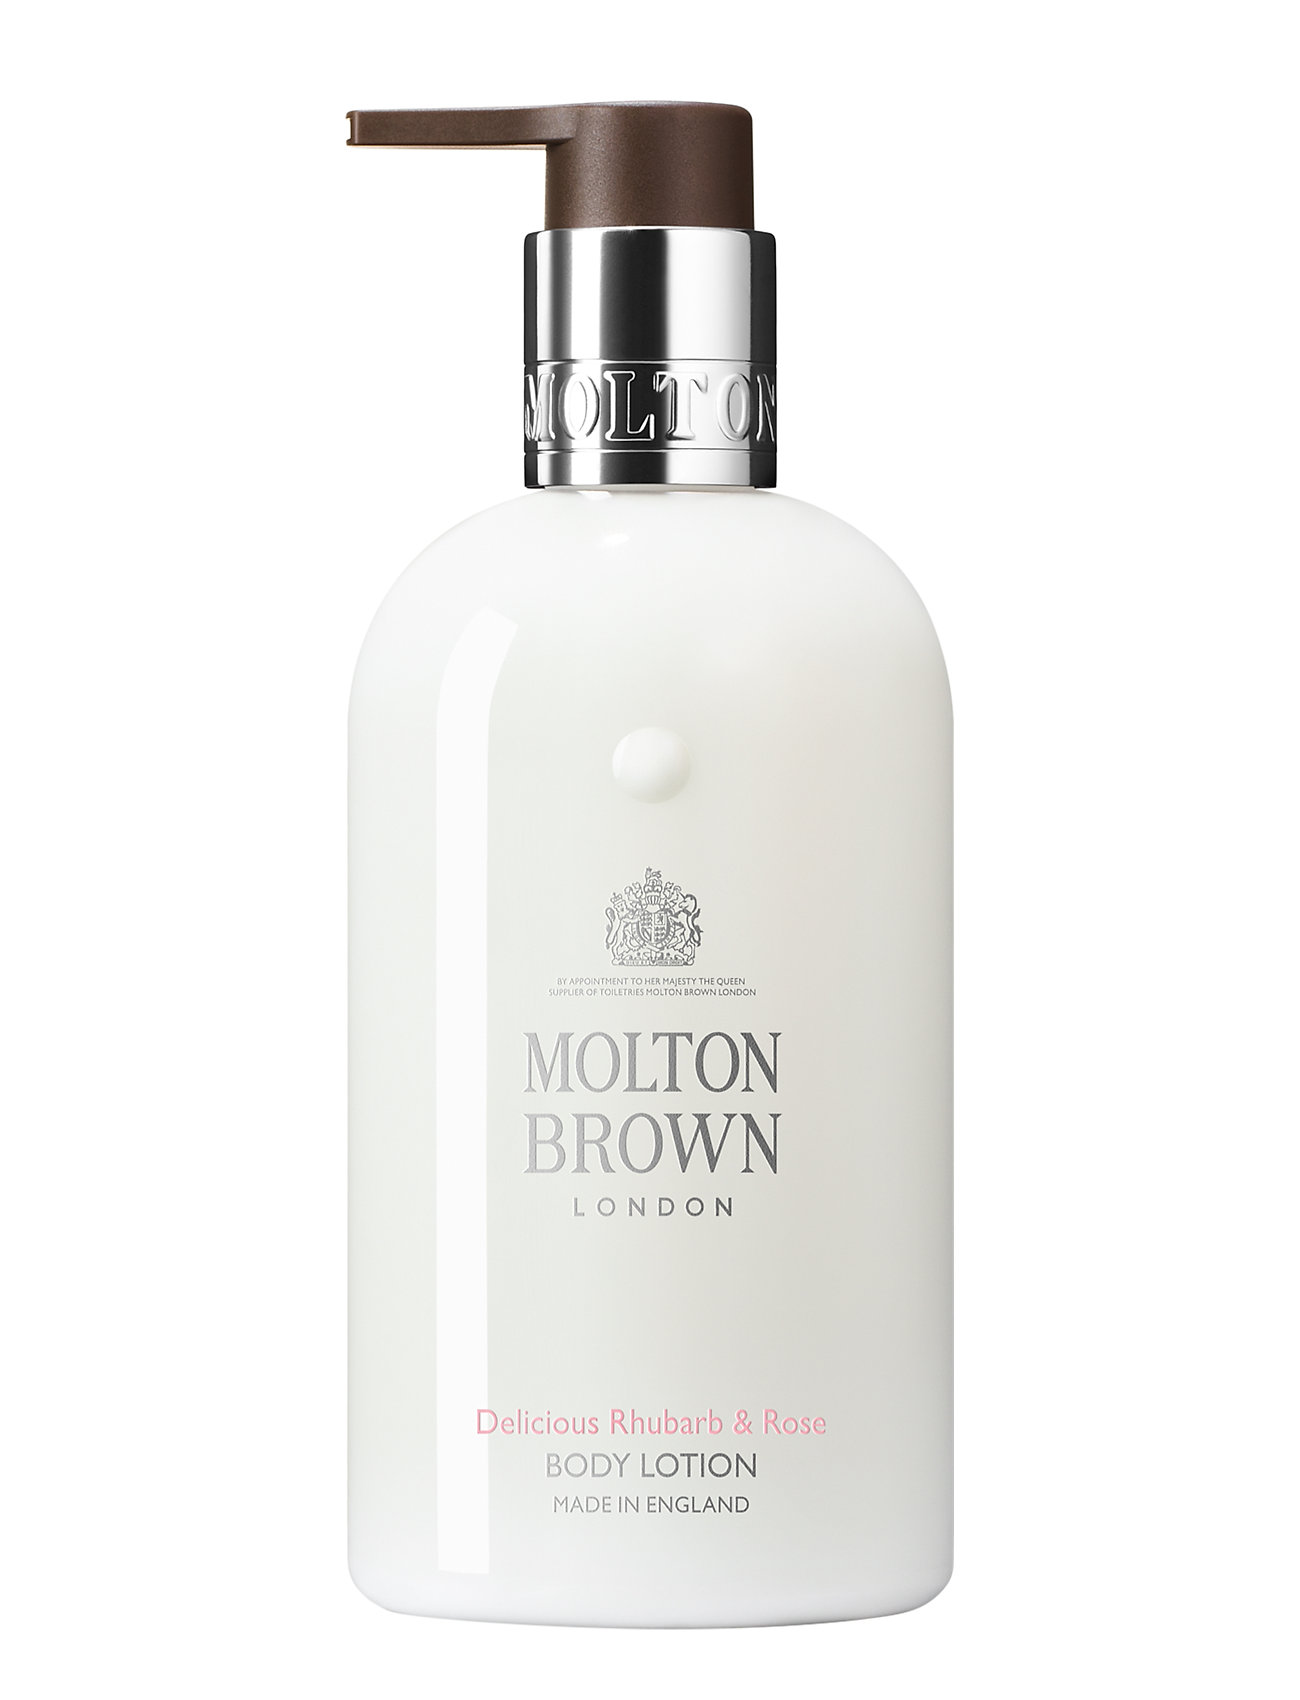 Image of Delicious Rhubarb & Rose Body Lotion Body Lotion Hudcreme Nude Molton Brown (3277932193)